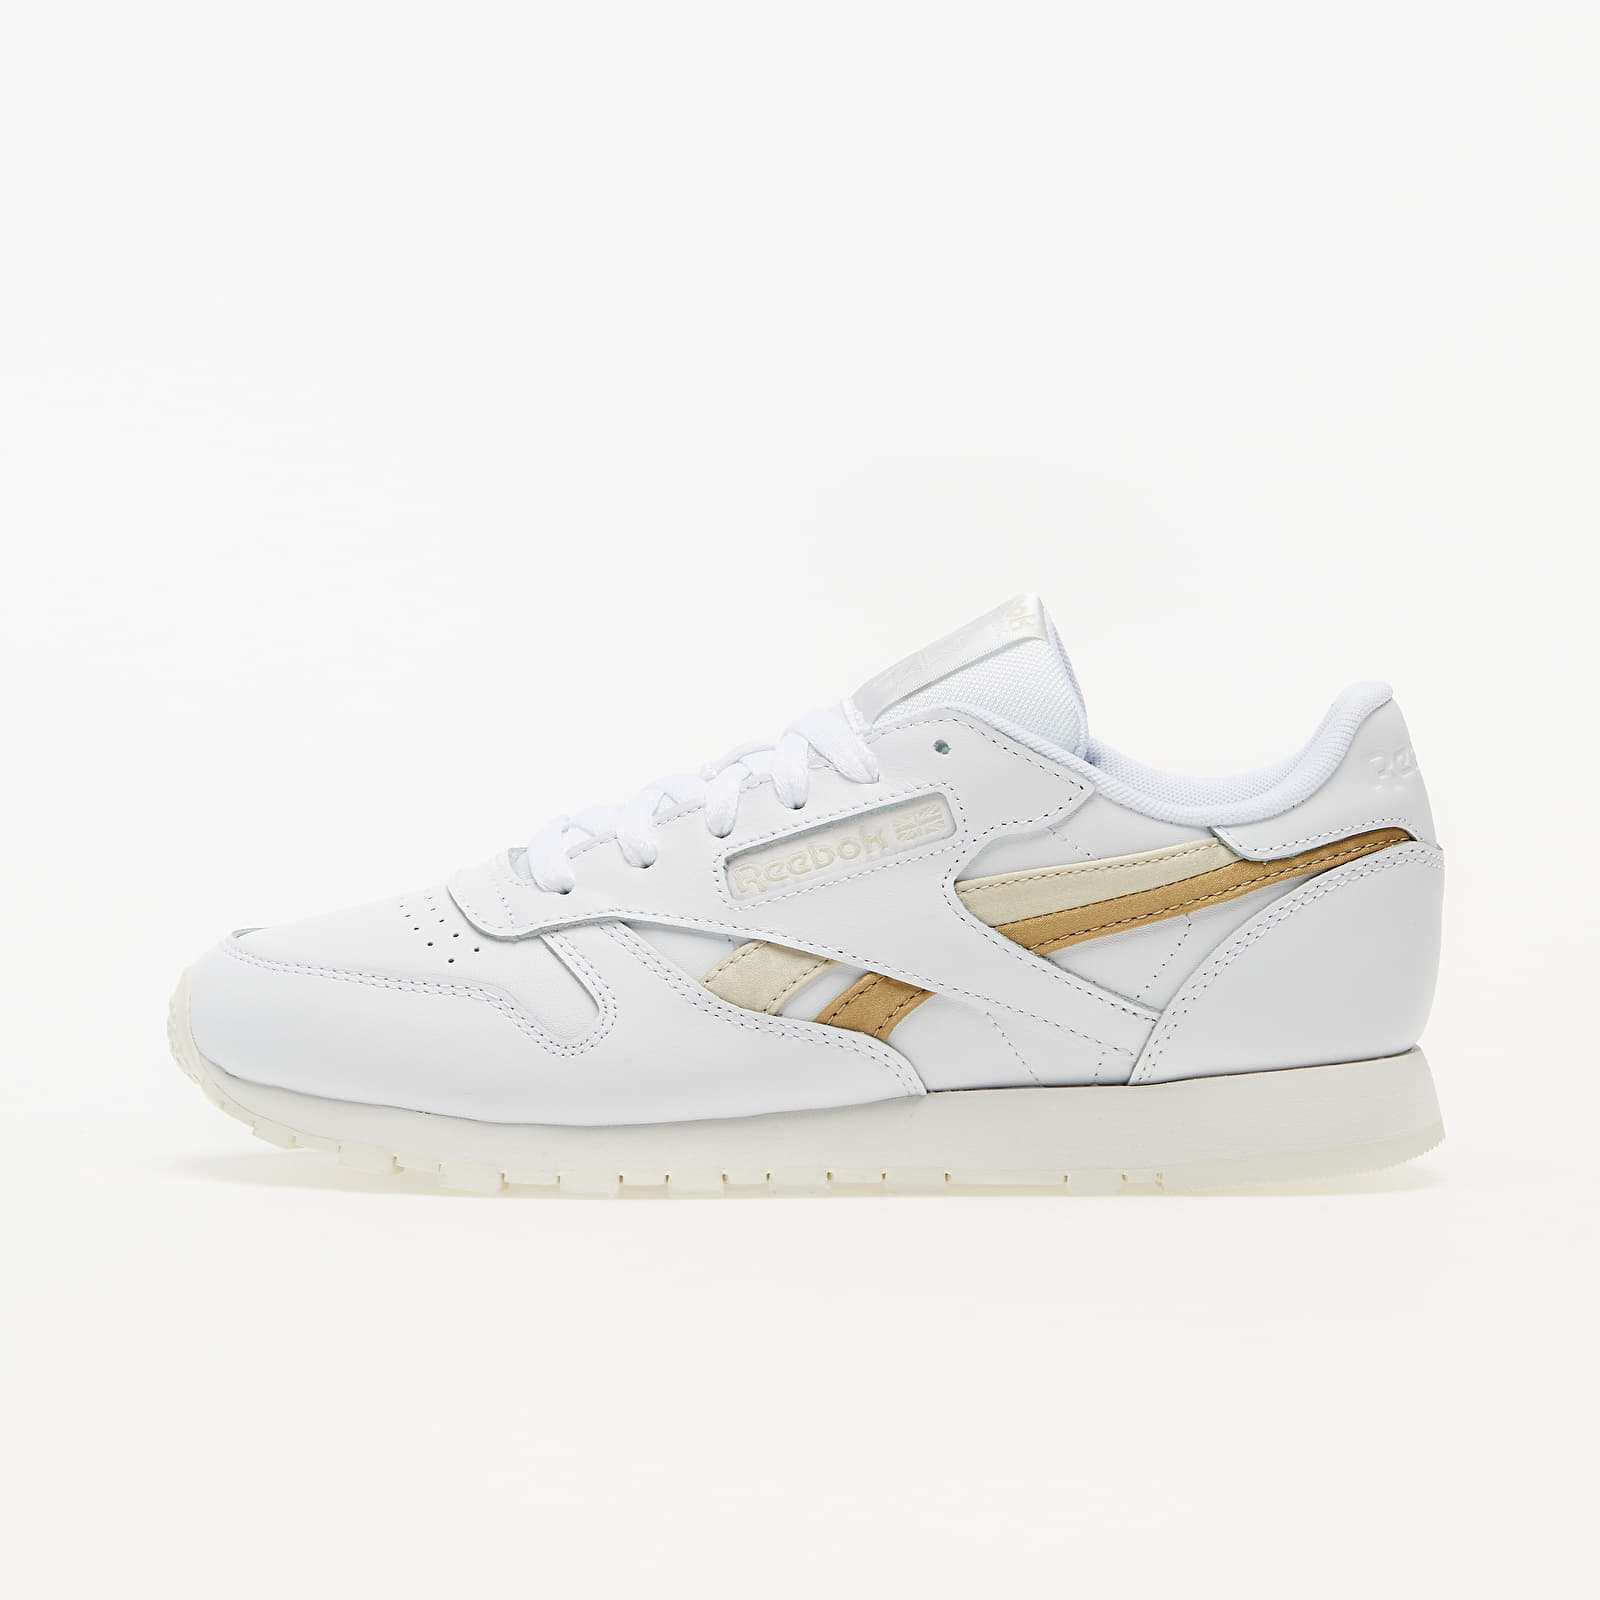 Reebok Classic Leather White/ Alabaster/ Utility Beige FW1257